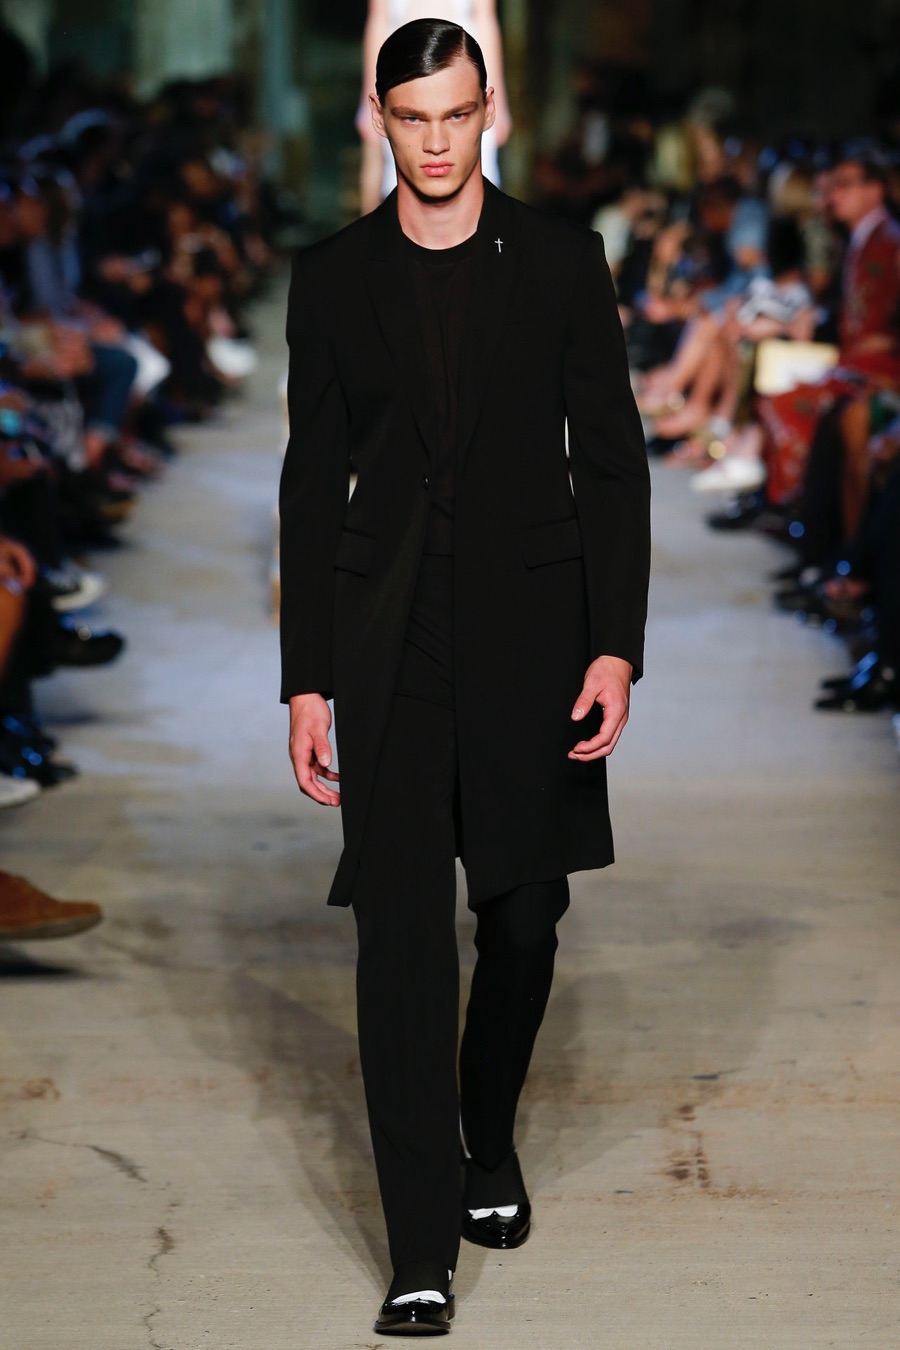 Givenchy-Spring-Summer-2016-Menswear-Collection-New-York-Fashion-Week-020.jpg